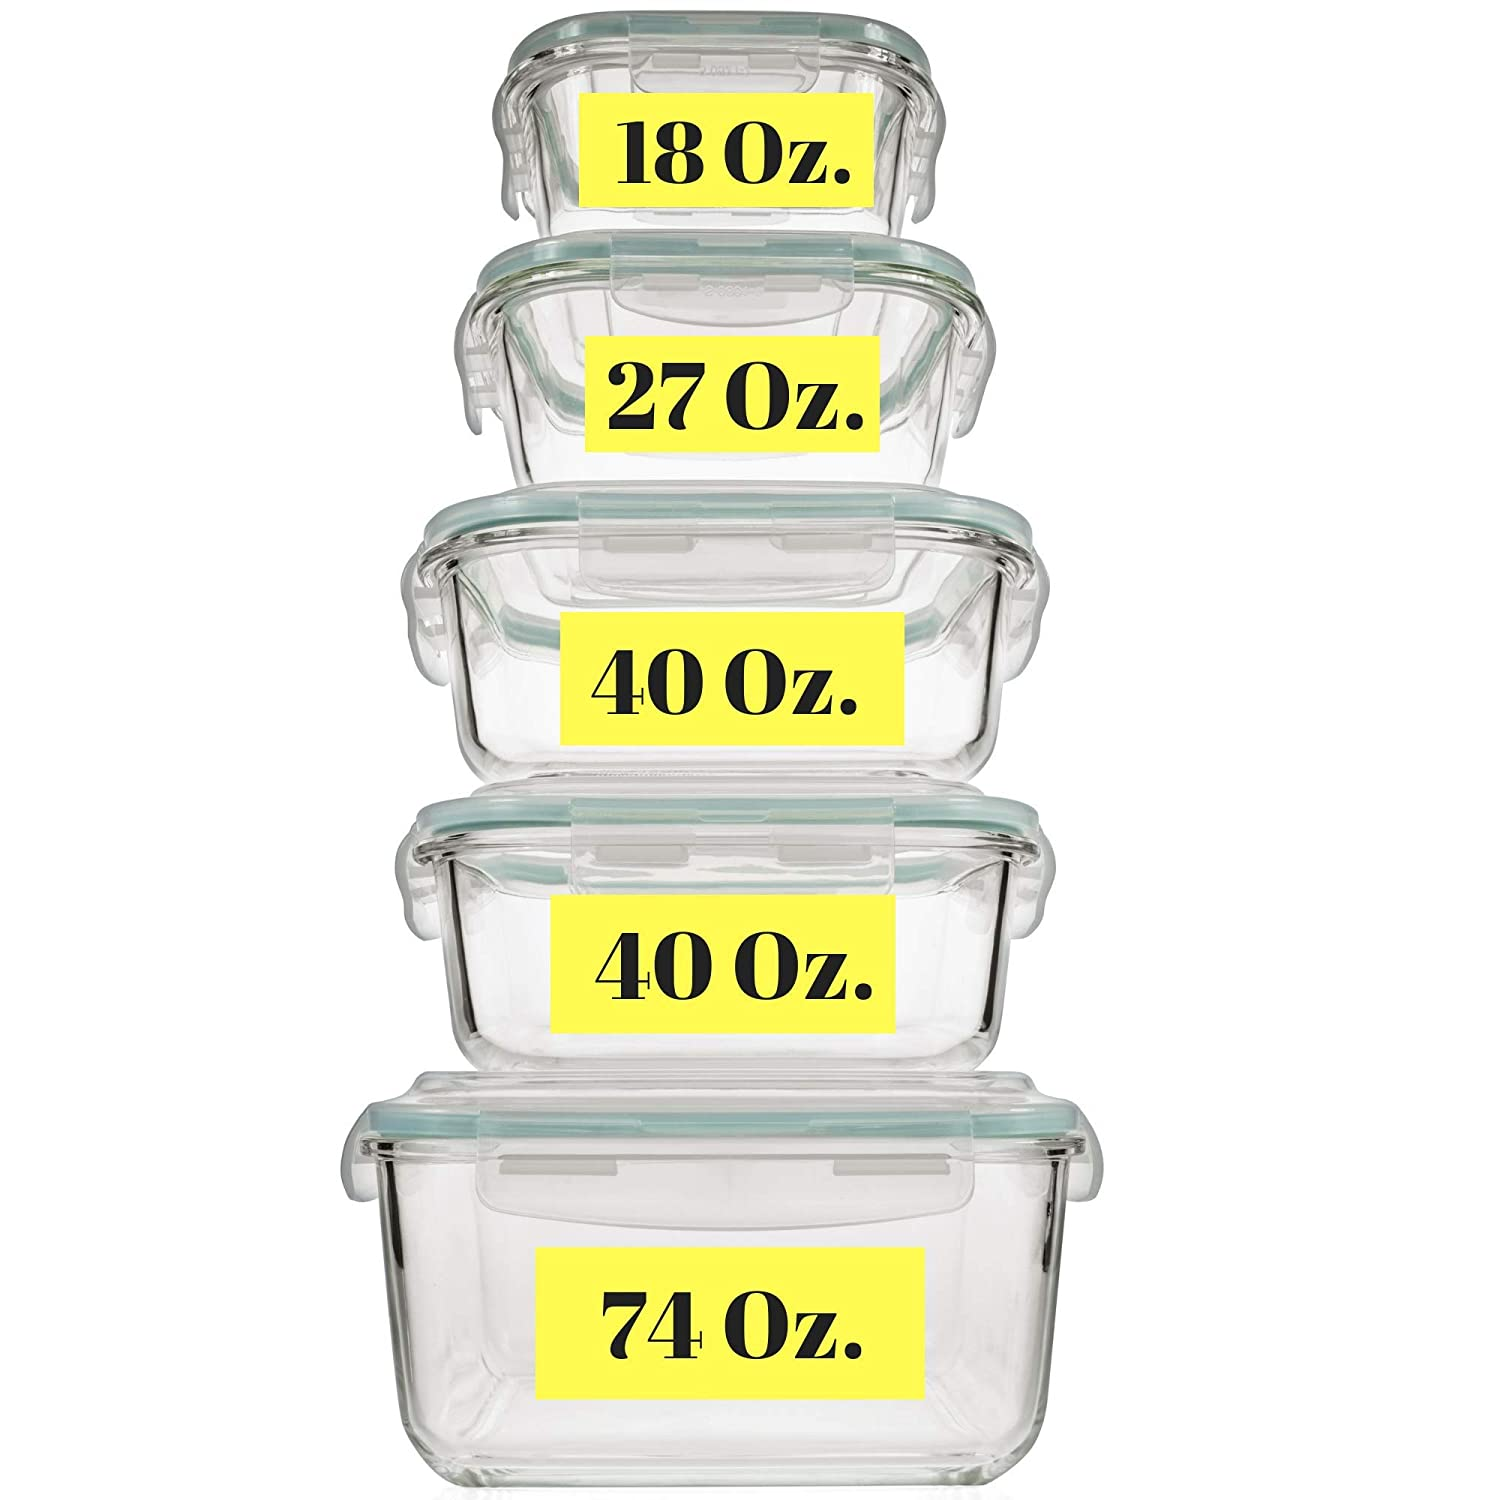 Extra Large & Assorted sizes Glass Food Storage Containers with Airtight Lids 10 Pc [5 containers with lids] Microwave/Oven/Freezer & Dishwasher Safe. BPA/PVC Free. Reusable Square container set